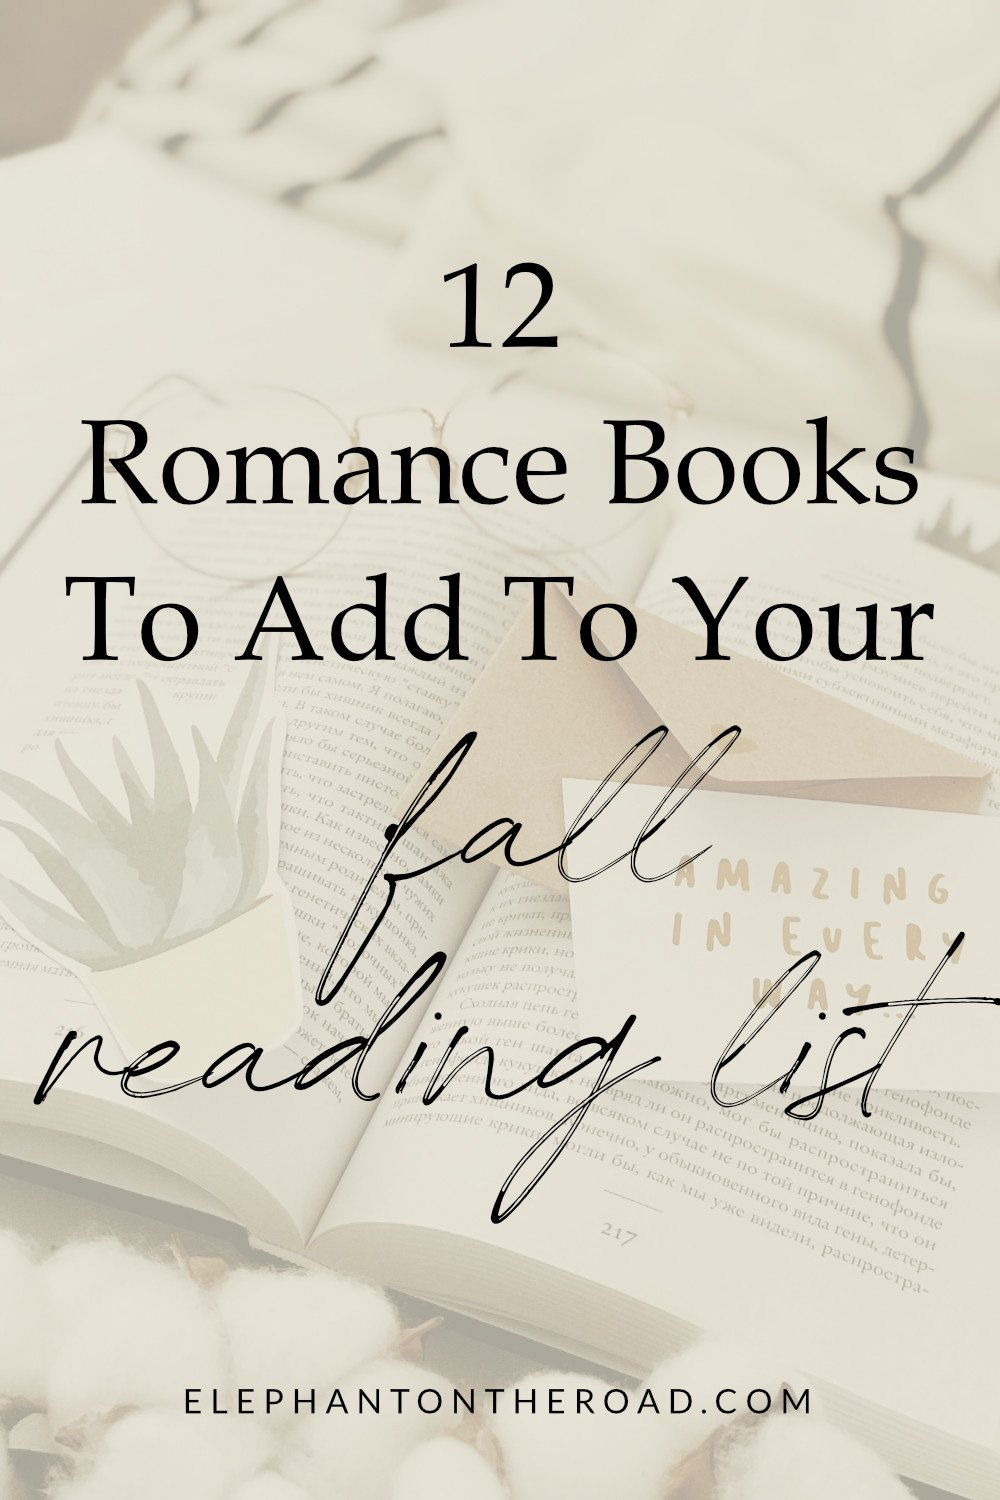 12 Romance Books To Add To Your Fall Reading List. Romance Book Recommendations Fall. Romance Novels. Fall Reading List. Romance Books List. Best Romance Books. Fantasy With Romance Books. Paranormal Romance. Romance Books To Read. Romance Books New. Elephant on the Road.